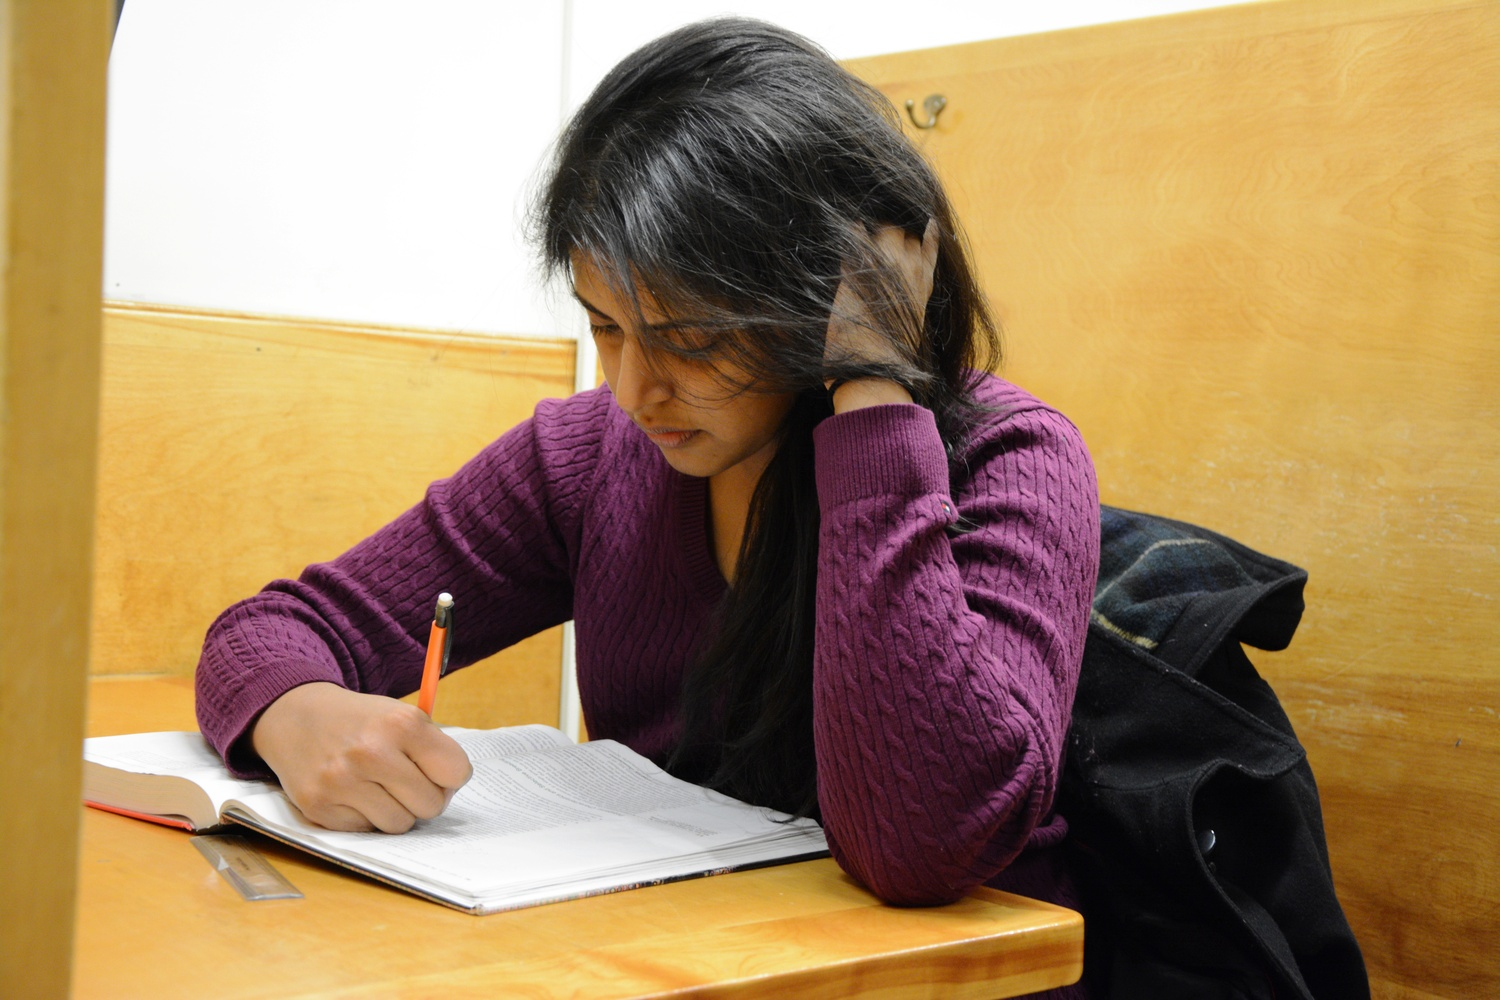 Varsha Varman '18 studies for her SLS 20 exam in the basement of Lamont Library on Saturday afternoon.